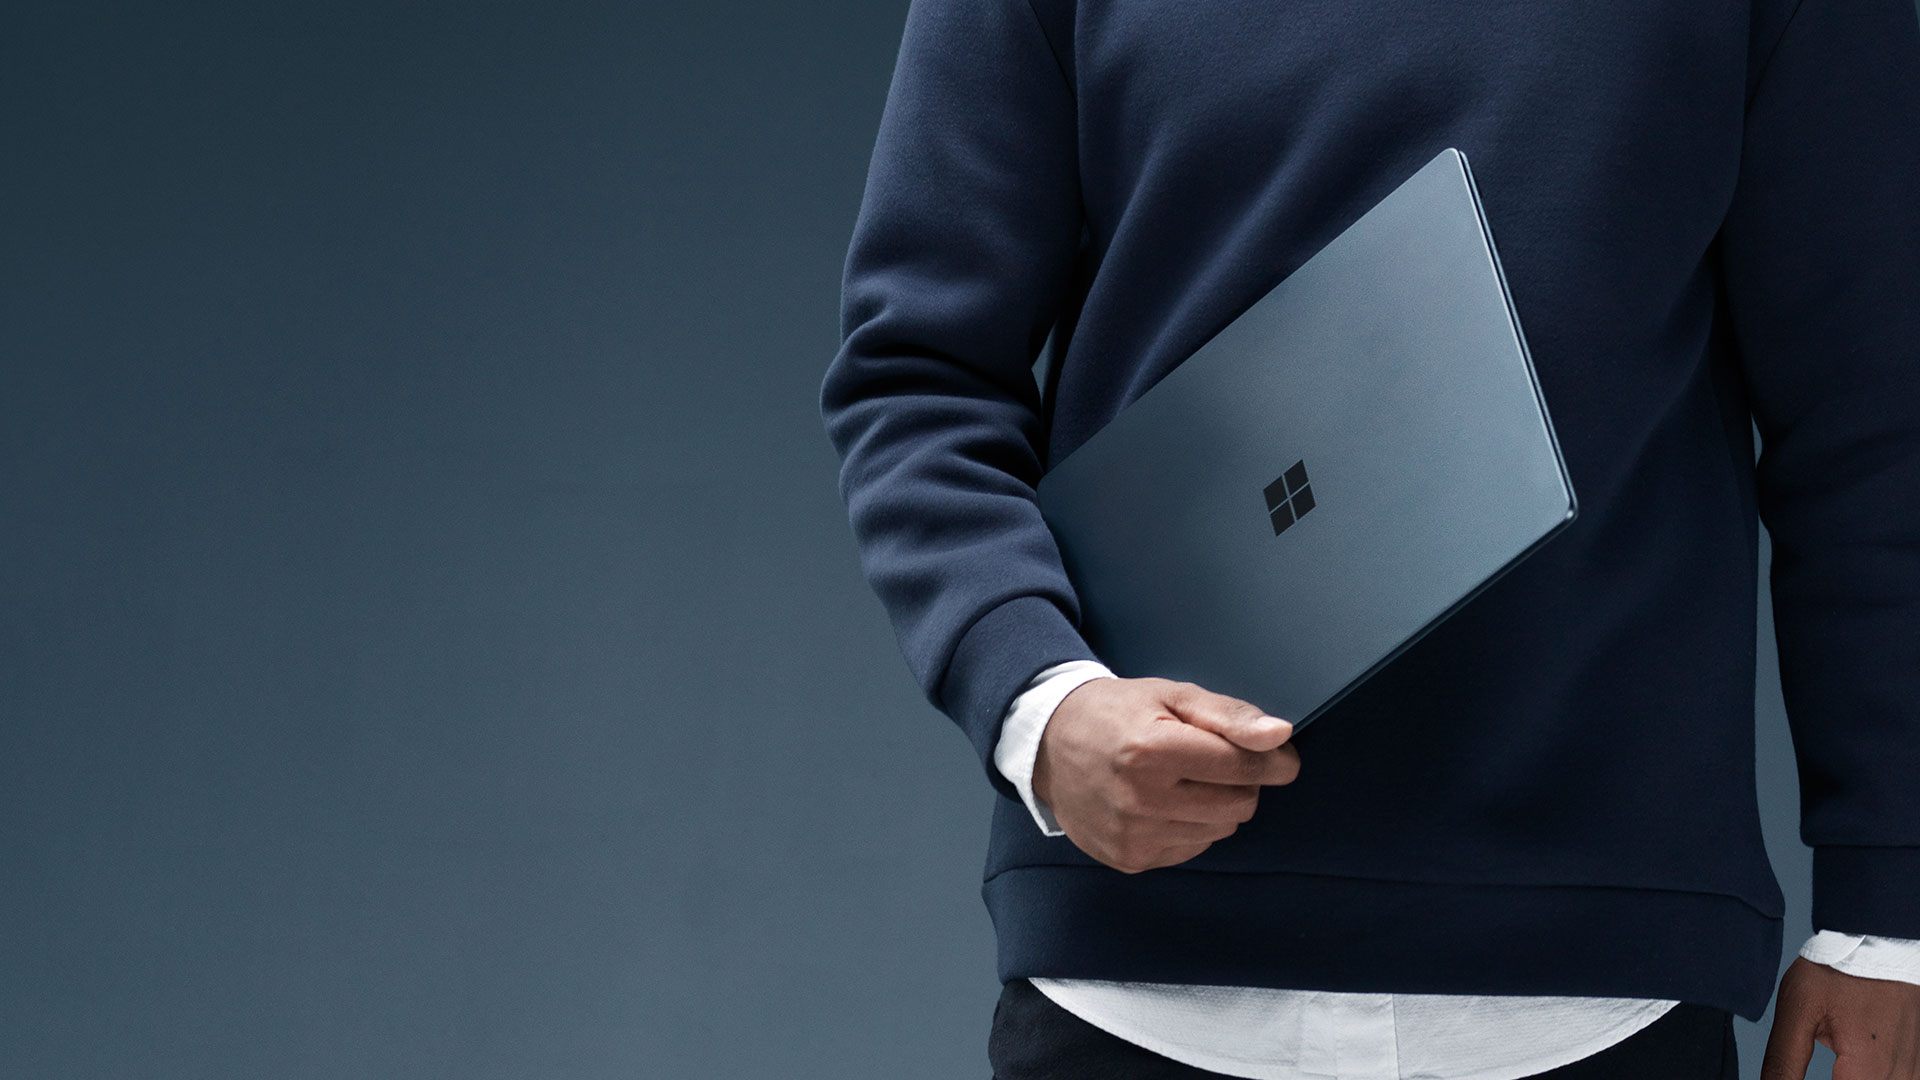 Buy The New Microsoft Surface Laptop Surface